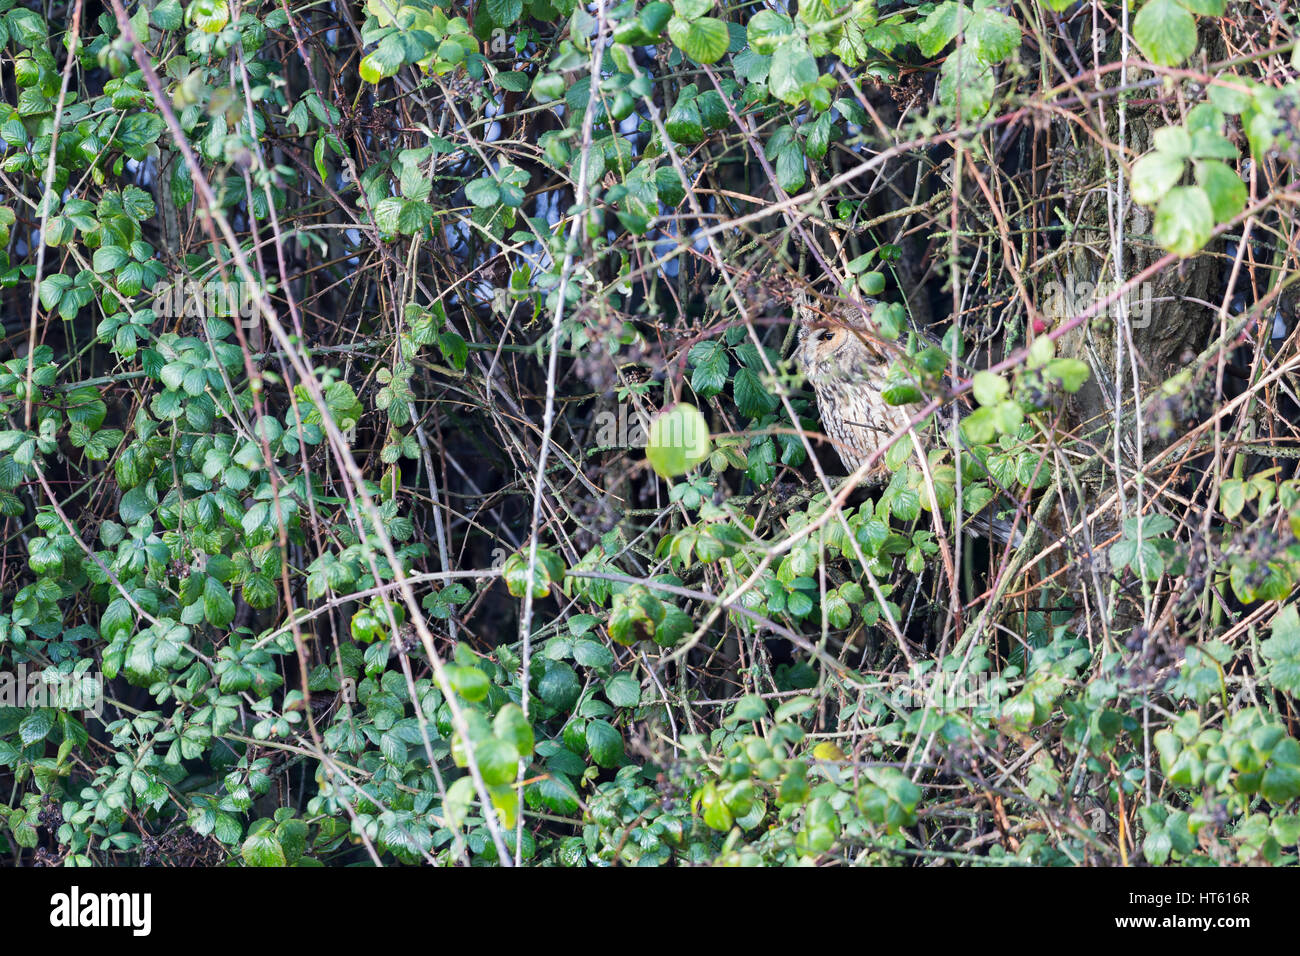 Long-eared owl Asio otus, adult, roosting in dense bramble thicket, Inner Marsh Farm, Cheshire, UK in January. - Stock Image